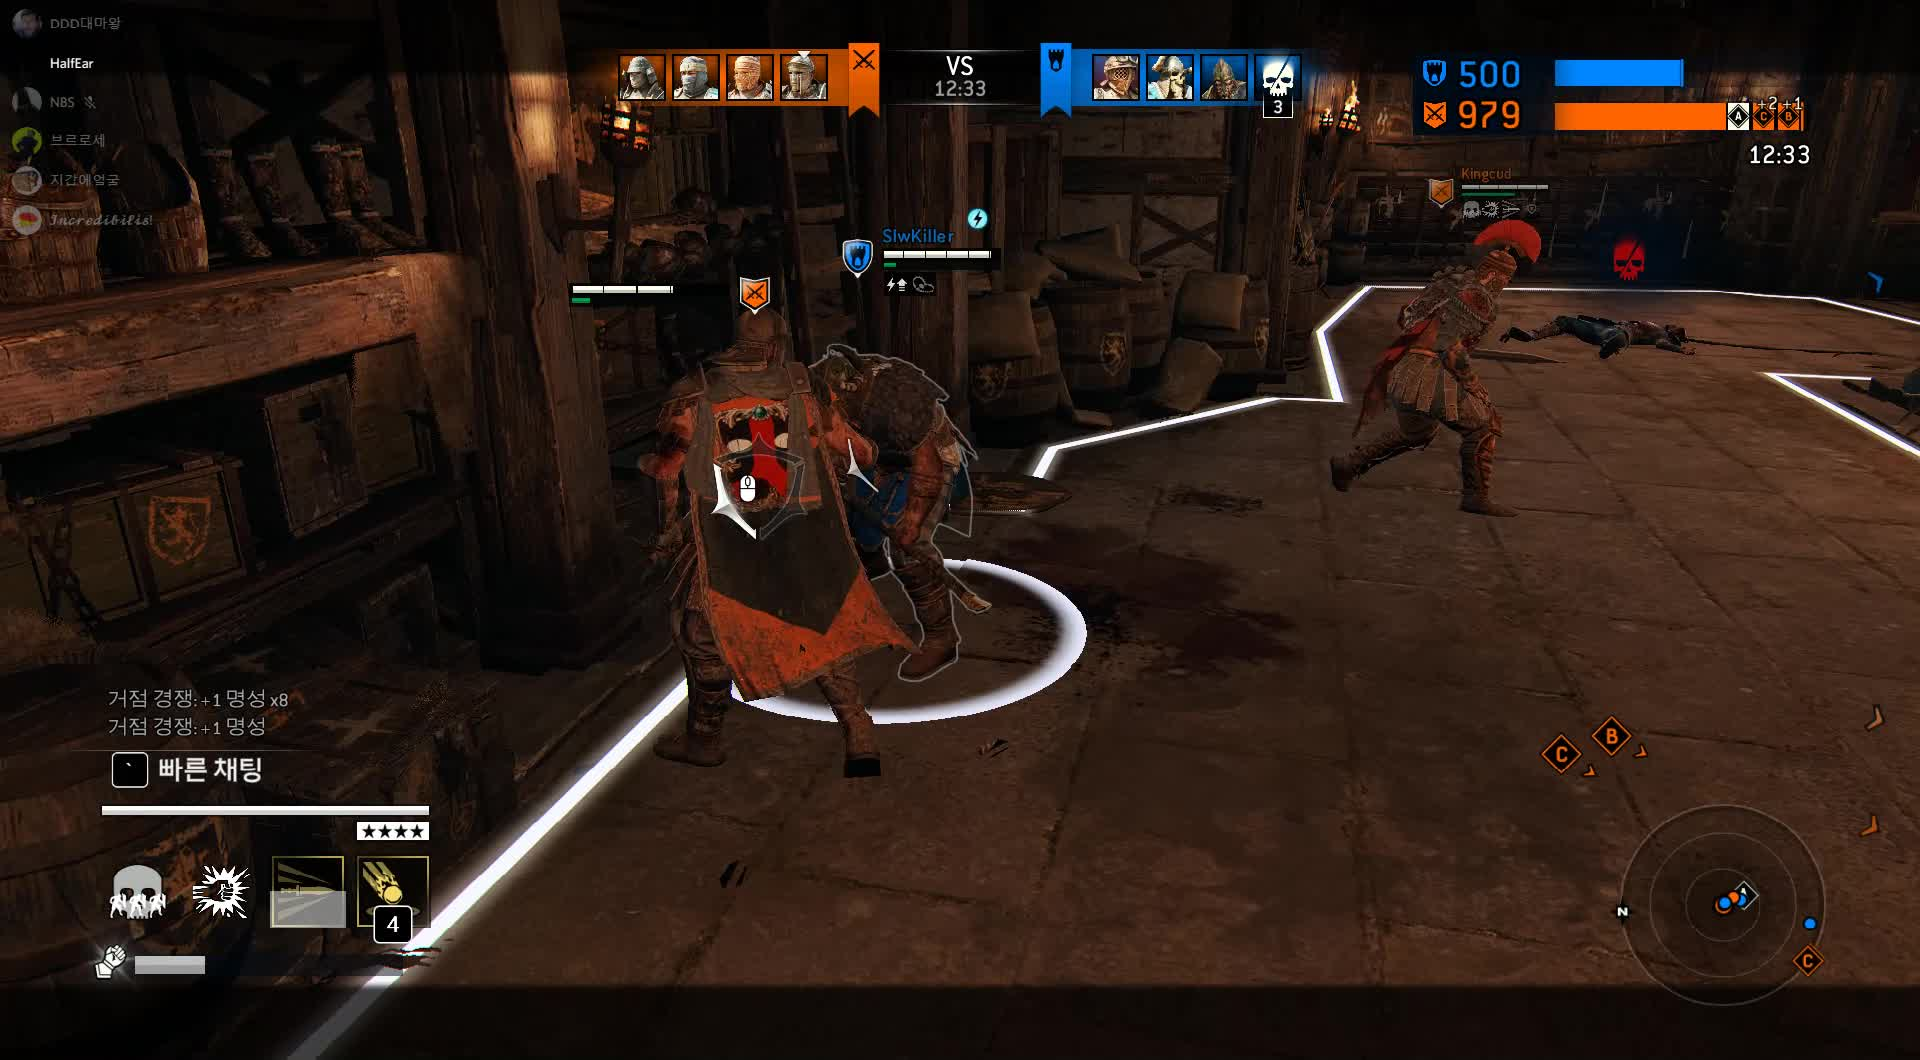 forhonor, For Honor 2019.03.30 - 22.47.00.11.DVR GIFs